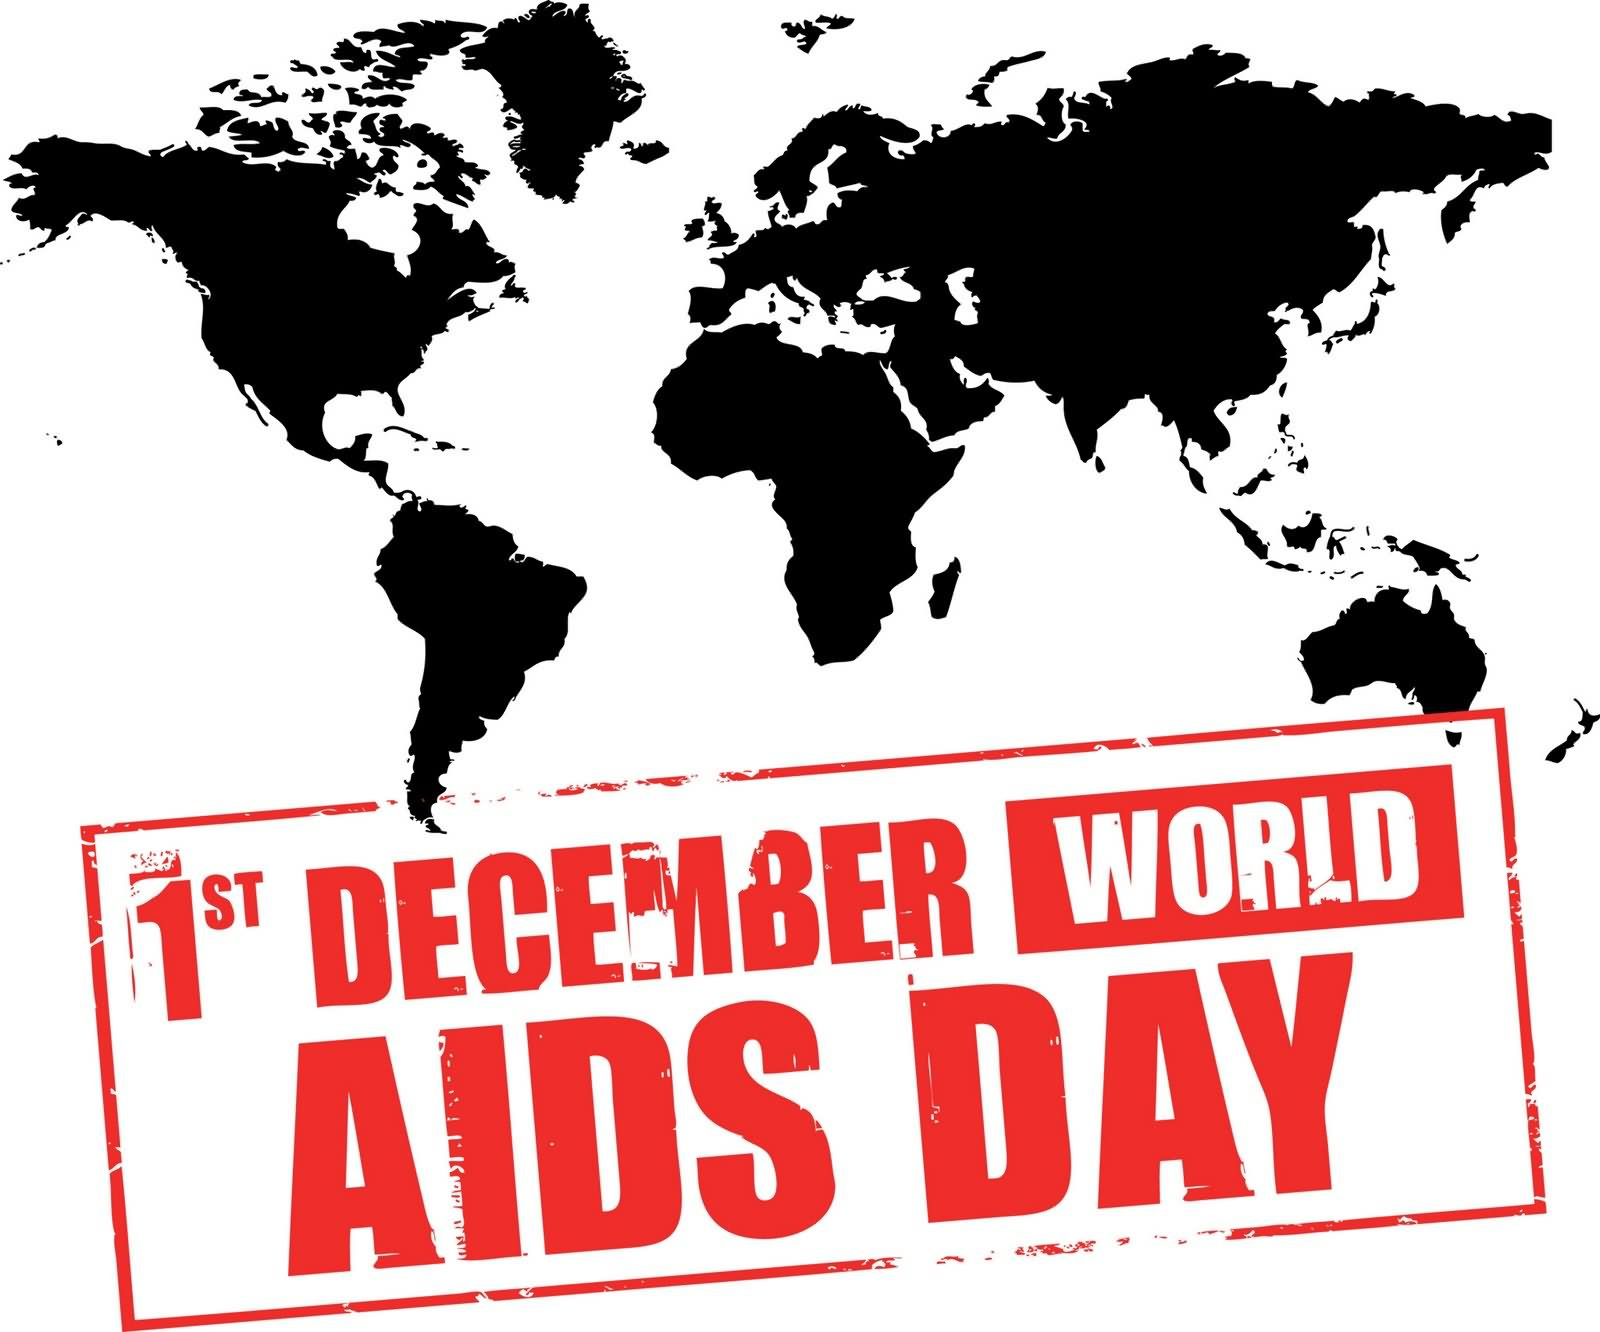 1st December World Aids Day